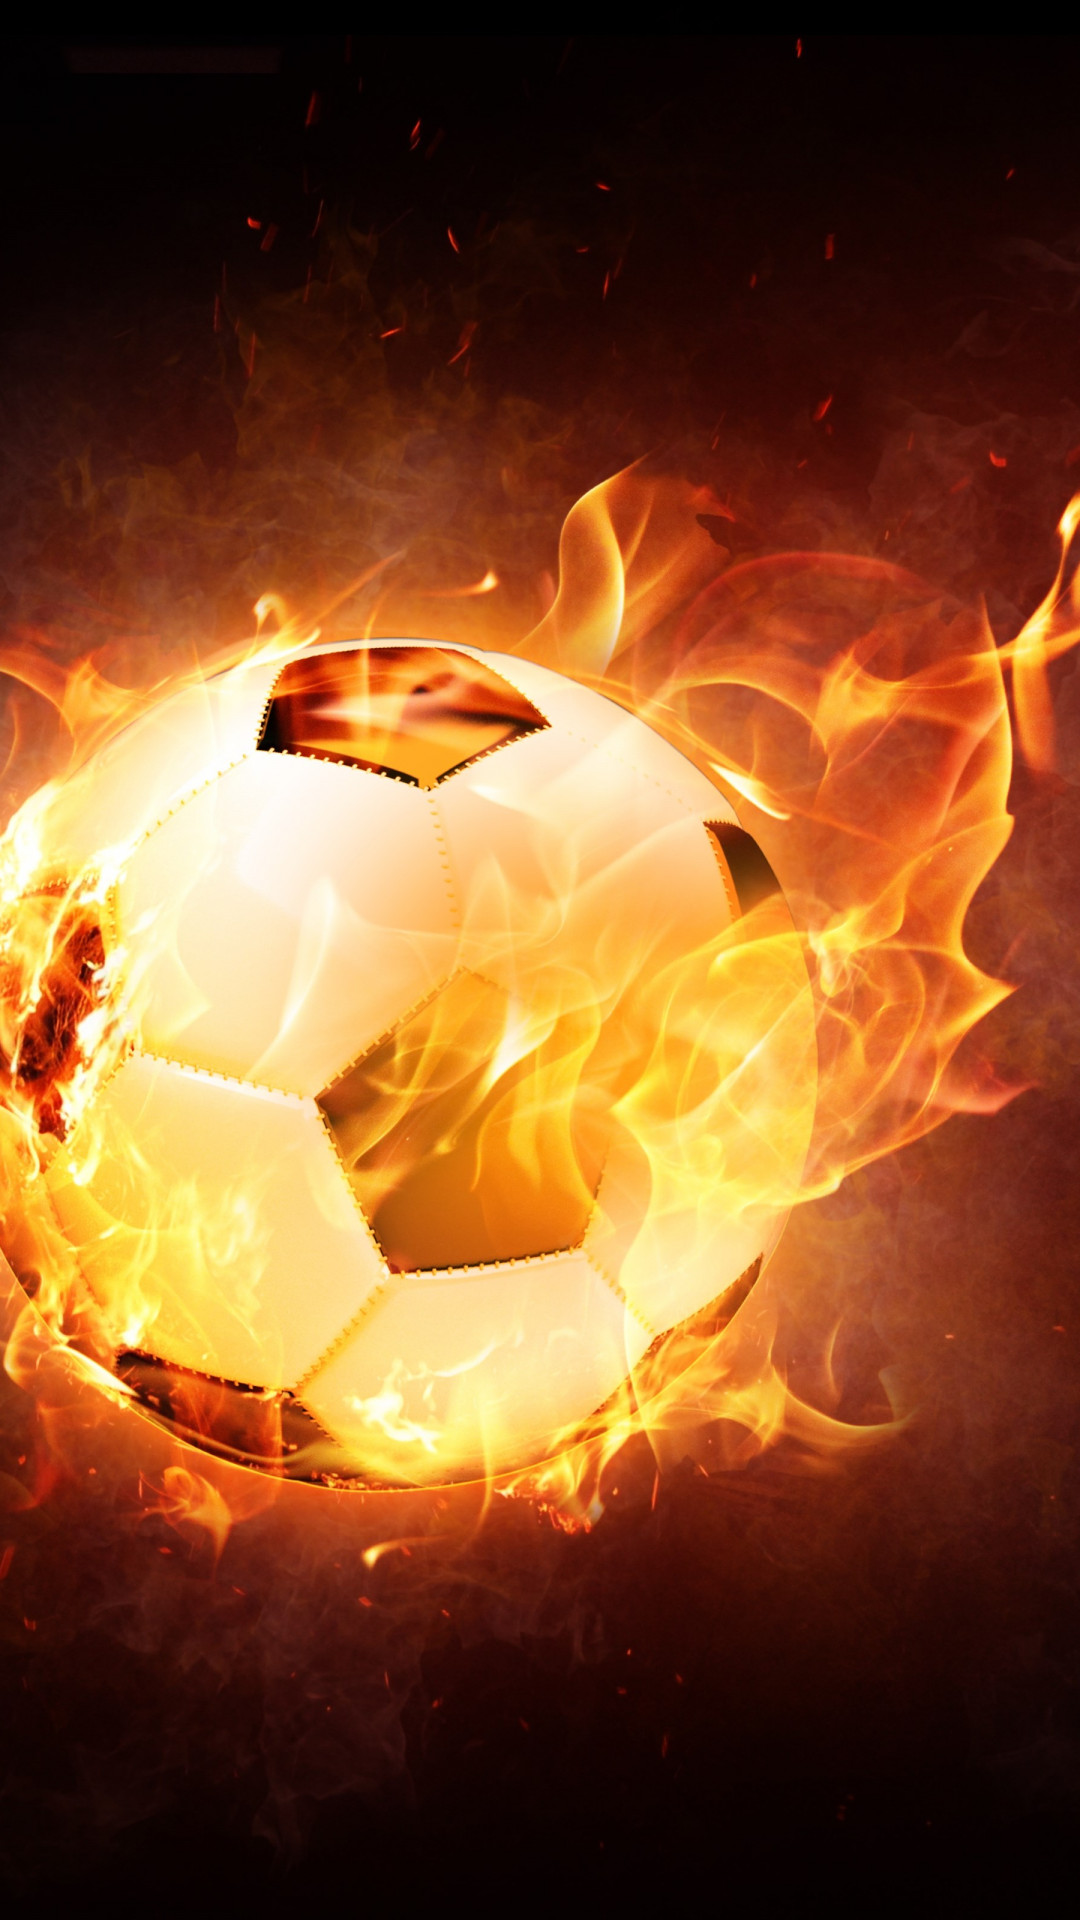 The football ball is on fire wallpaper 1080x1920